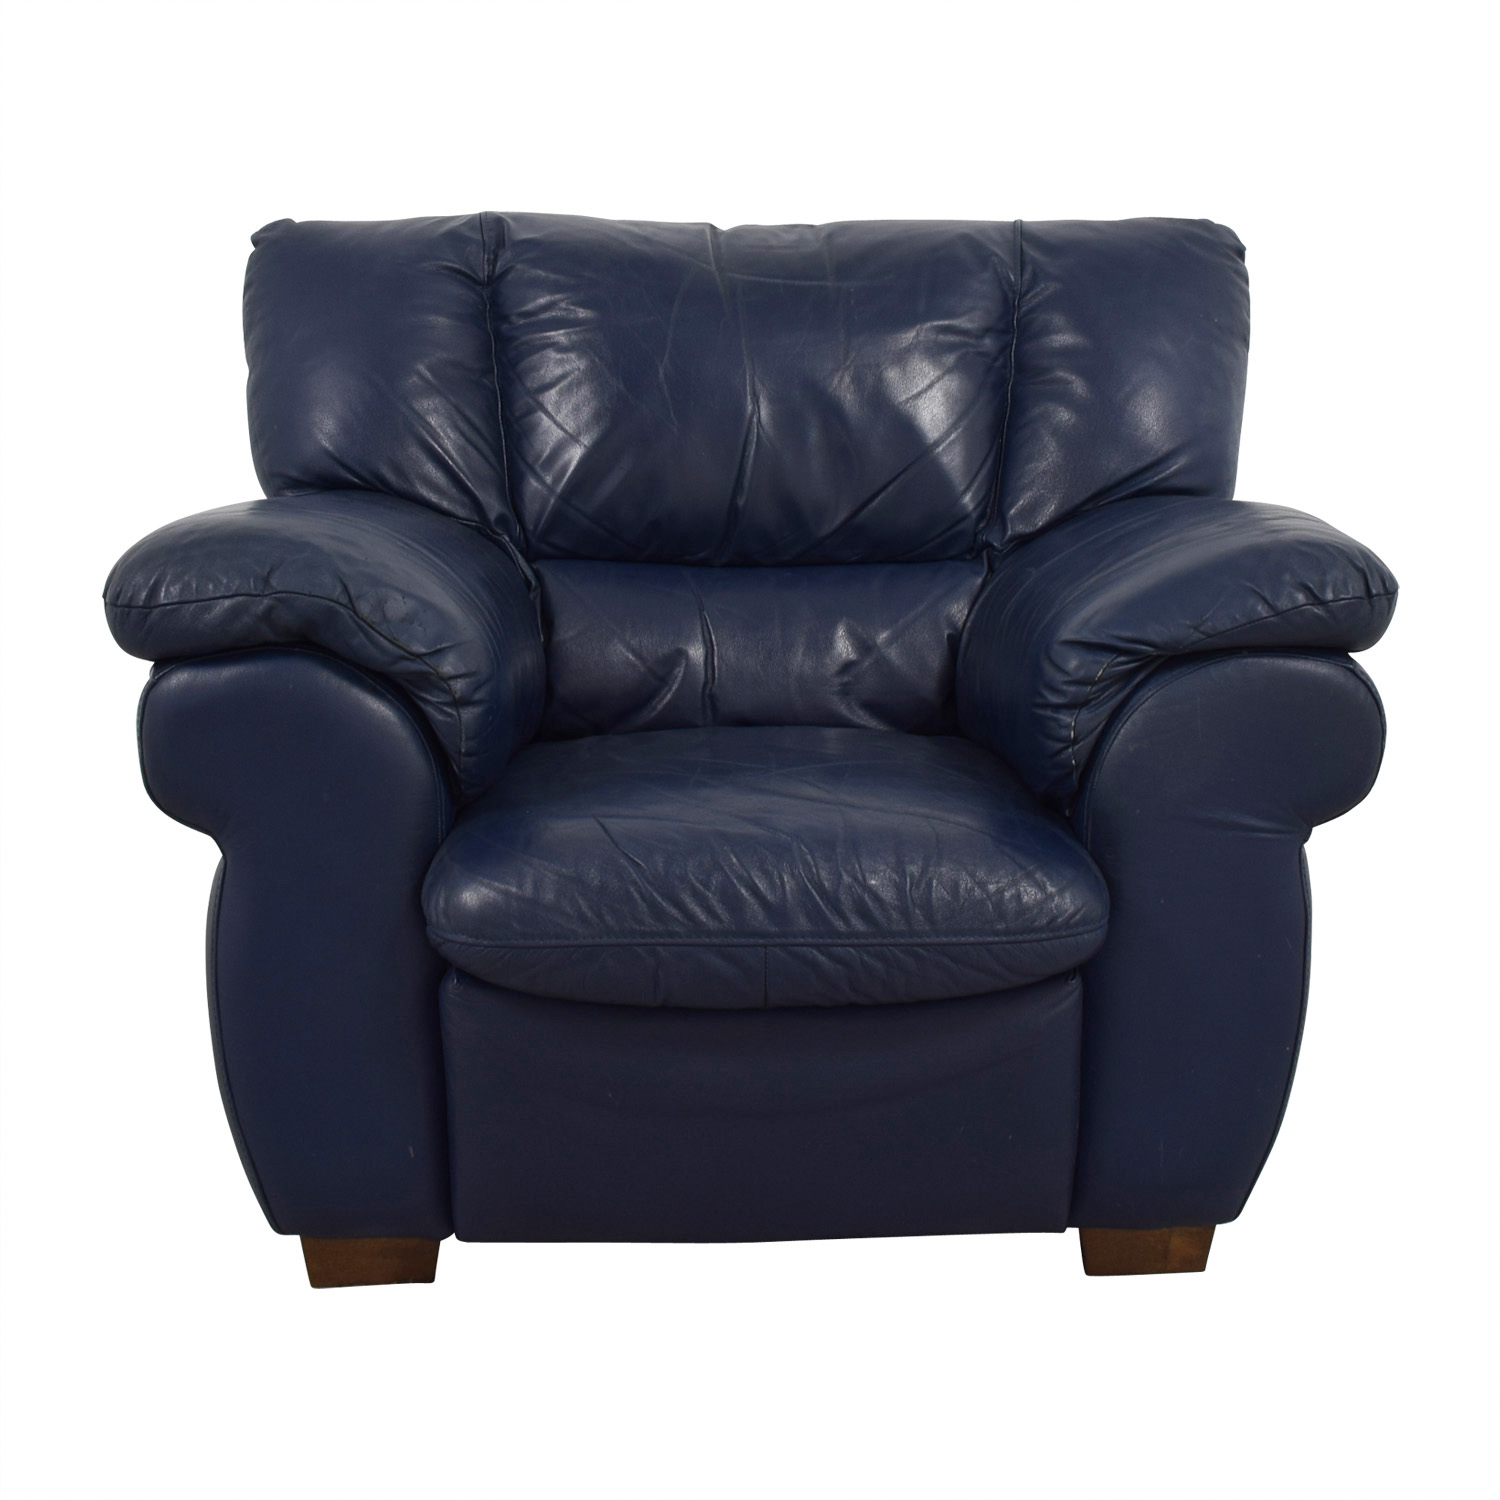 Macys Leather Chair 90 Off Macy 39s Macy 39s Navy Blue Leather Sofa Chair Chairs